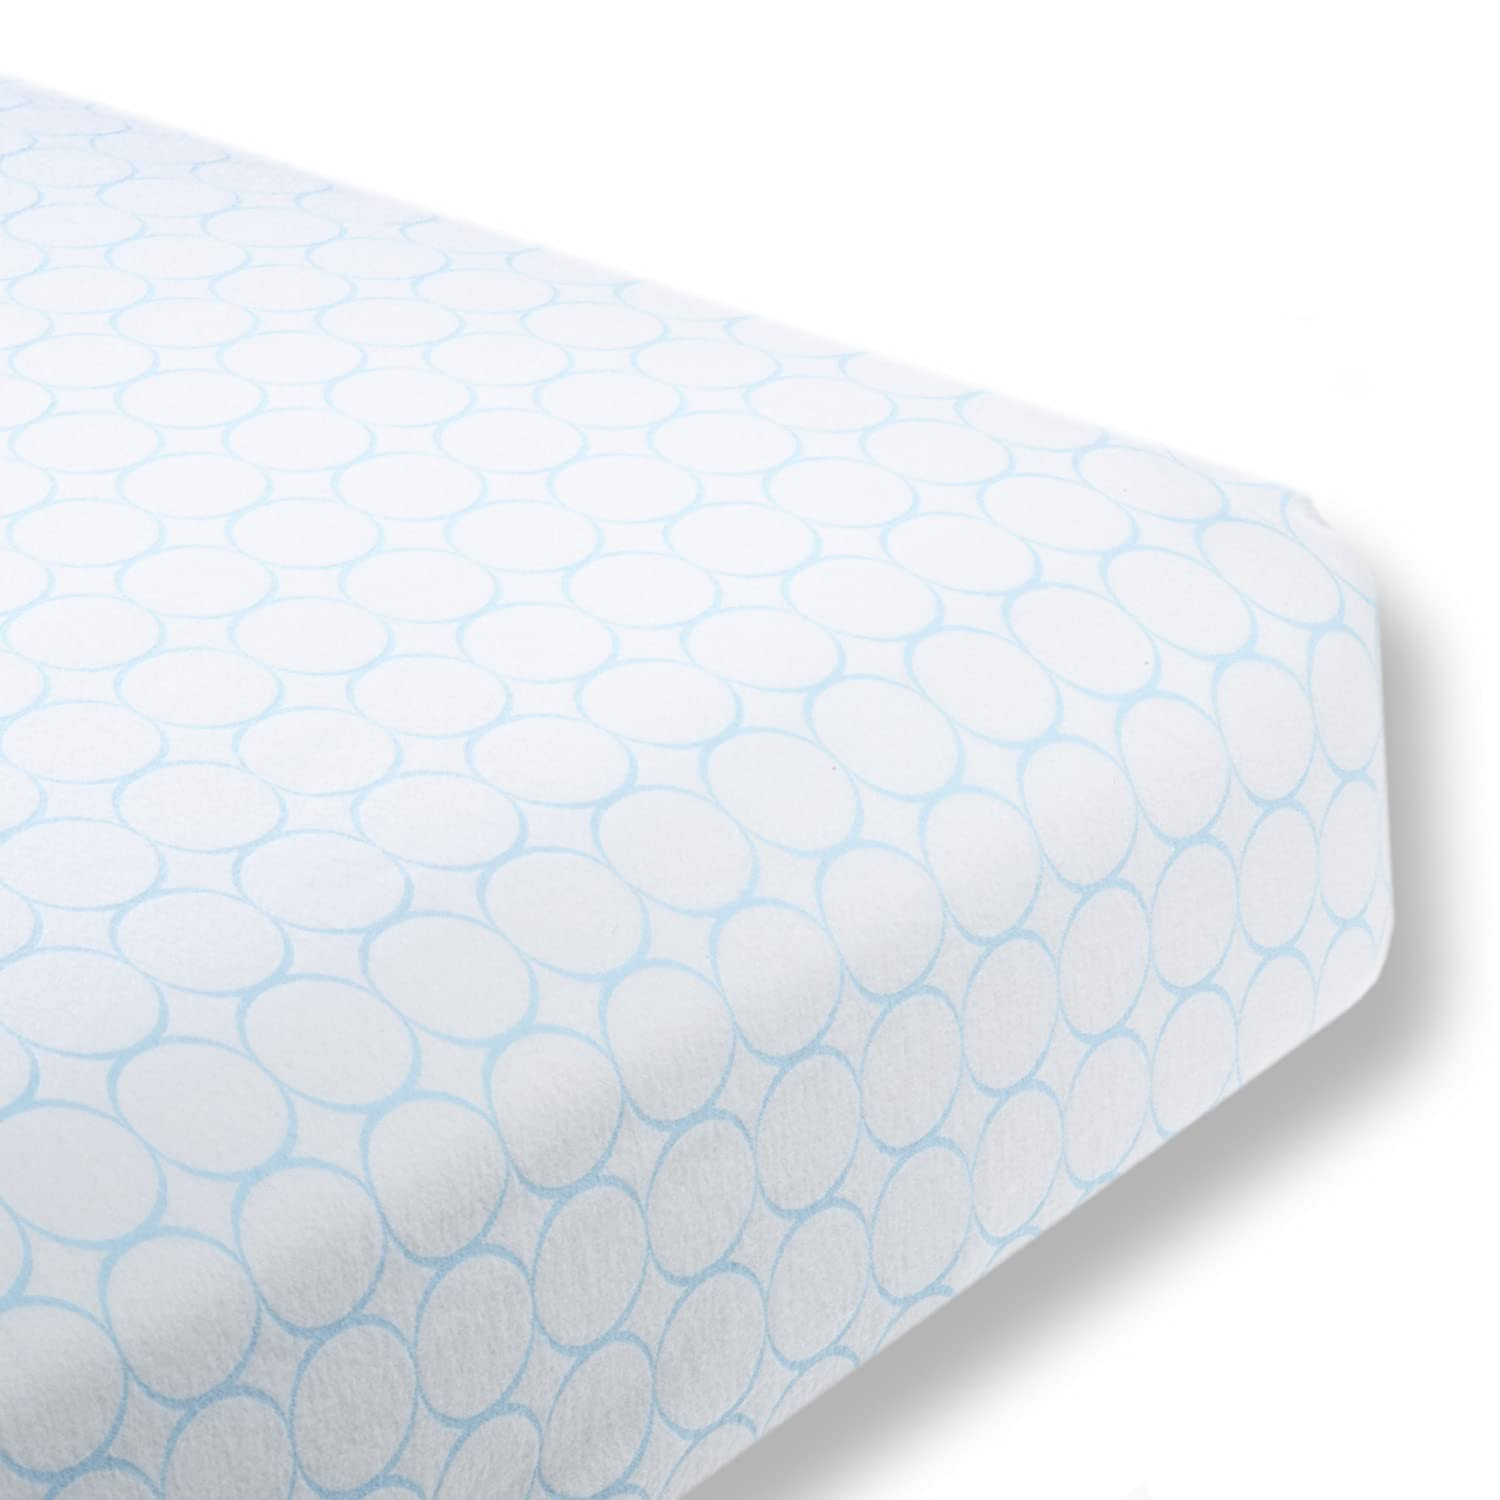 SwaddleDesigns Cotton Crib Sheet, Made in USA, Premium Cotton Flannel, Pastel Blue Mod Circles